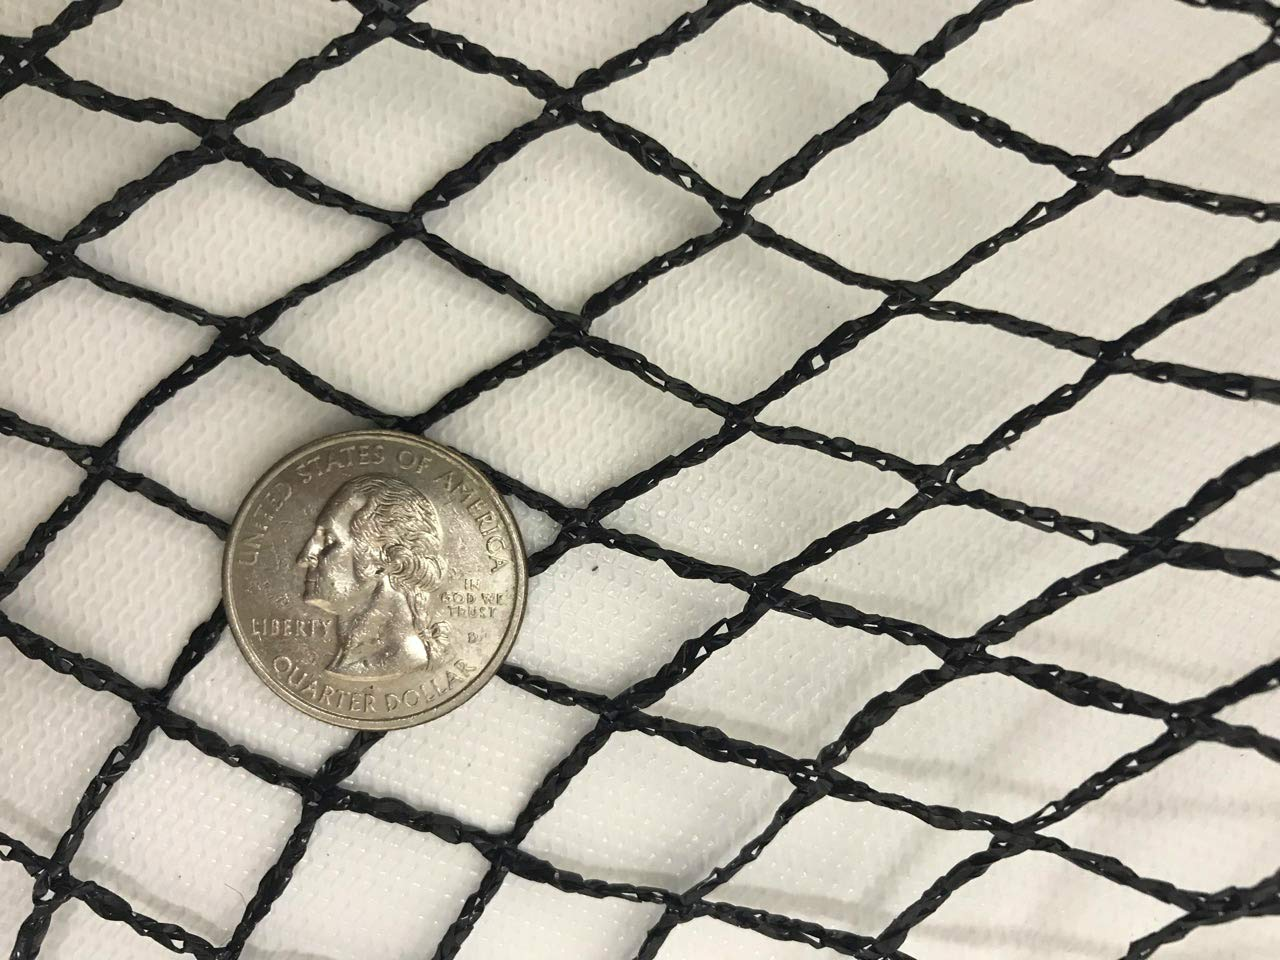 Green Vista 1/2 Inch Commercial Quality Pond & Garden Netting 20x25 Feet - Keeps Out Debris, Predators - Heavy Duty, UV Resistant, Small Holes, Steel Stakes by Green Vista Water Gardens (Image #2)